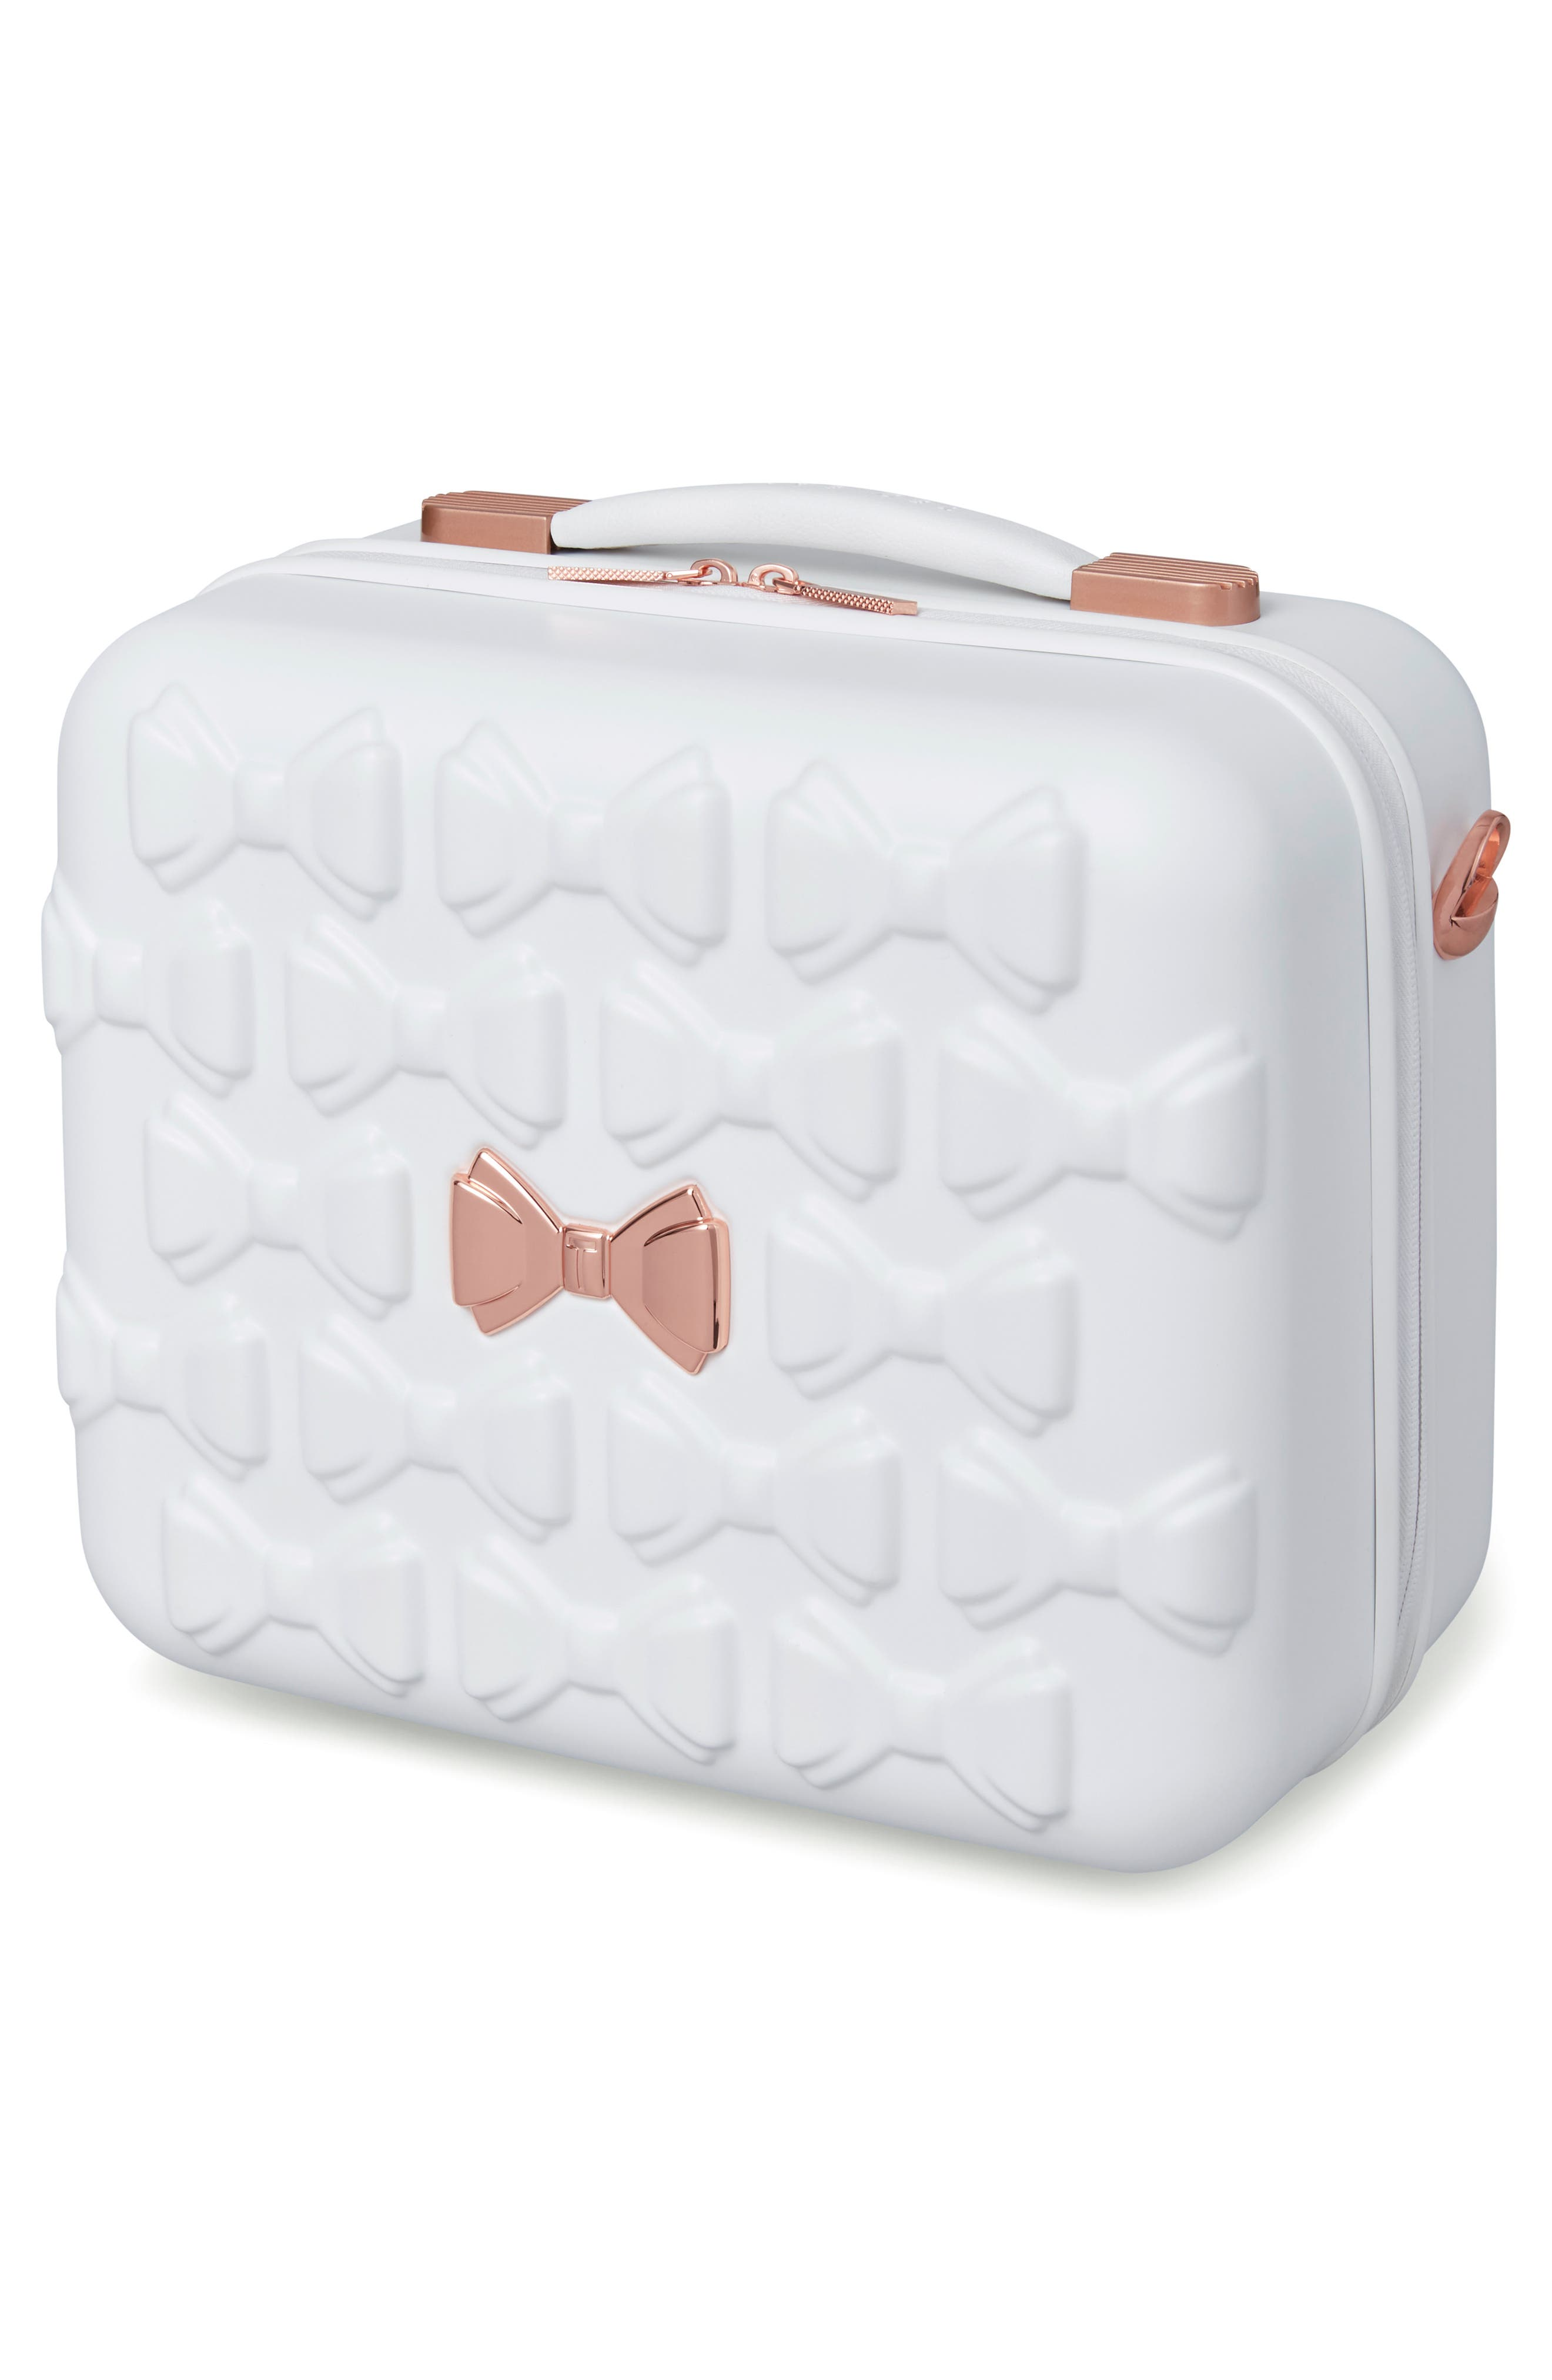 Beau Hardshell Vanity Case,                             Alternate thumbnail 3, color,                             WHITE